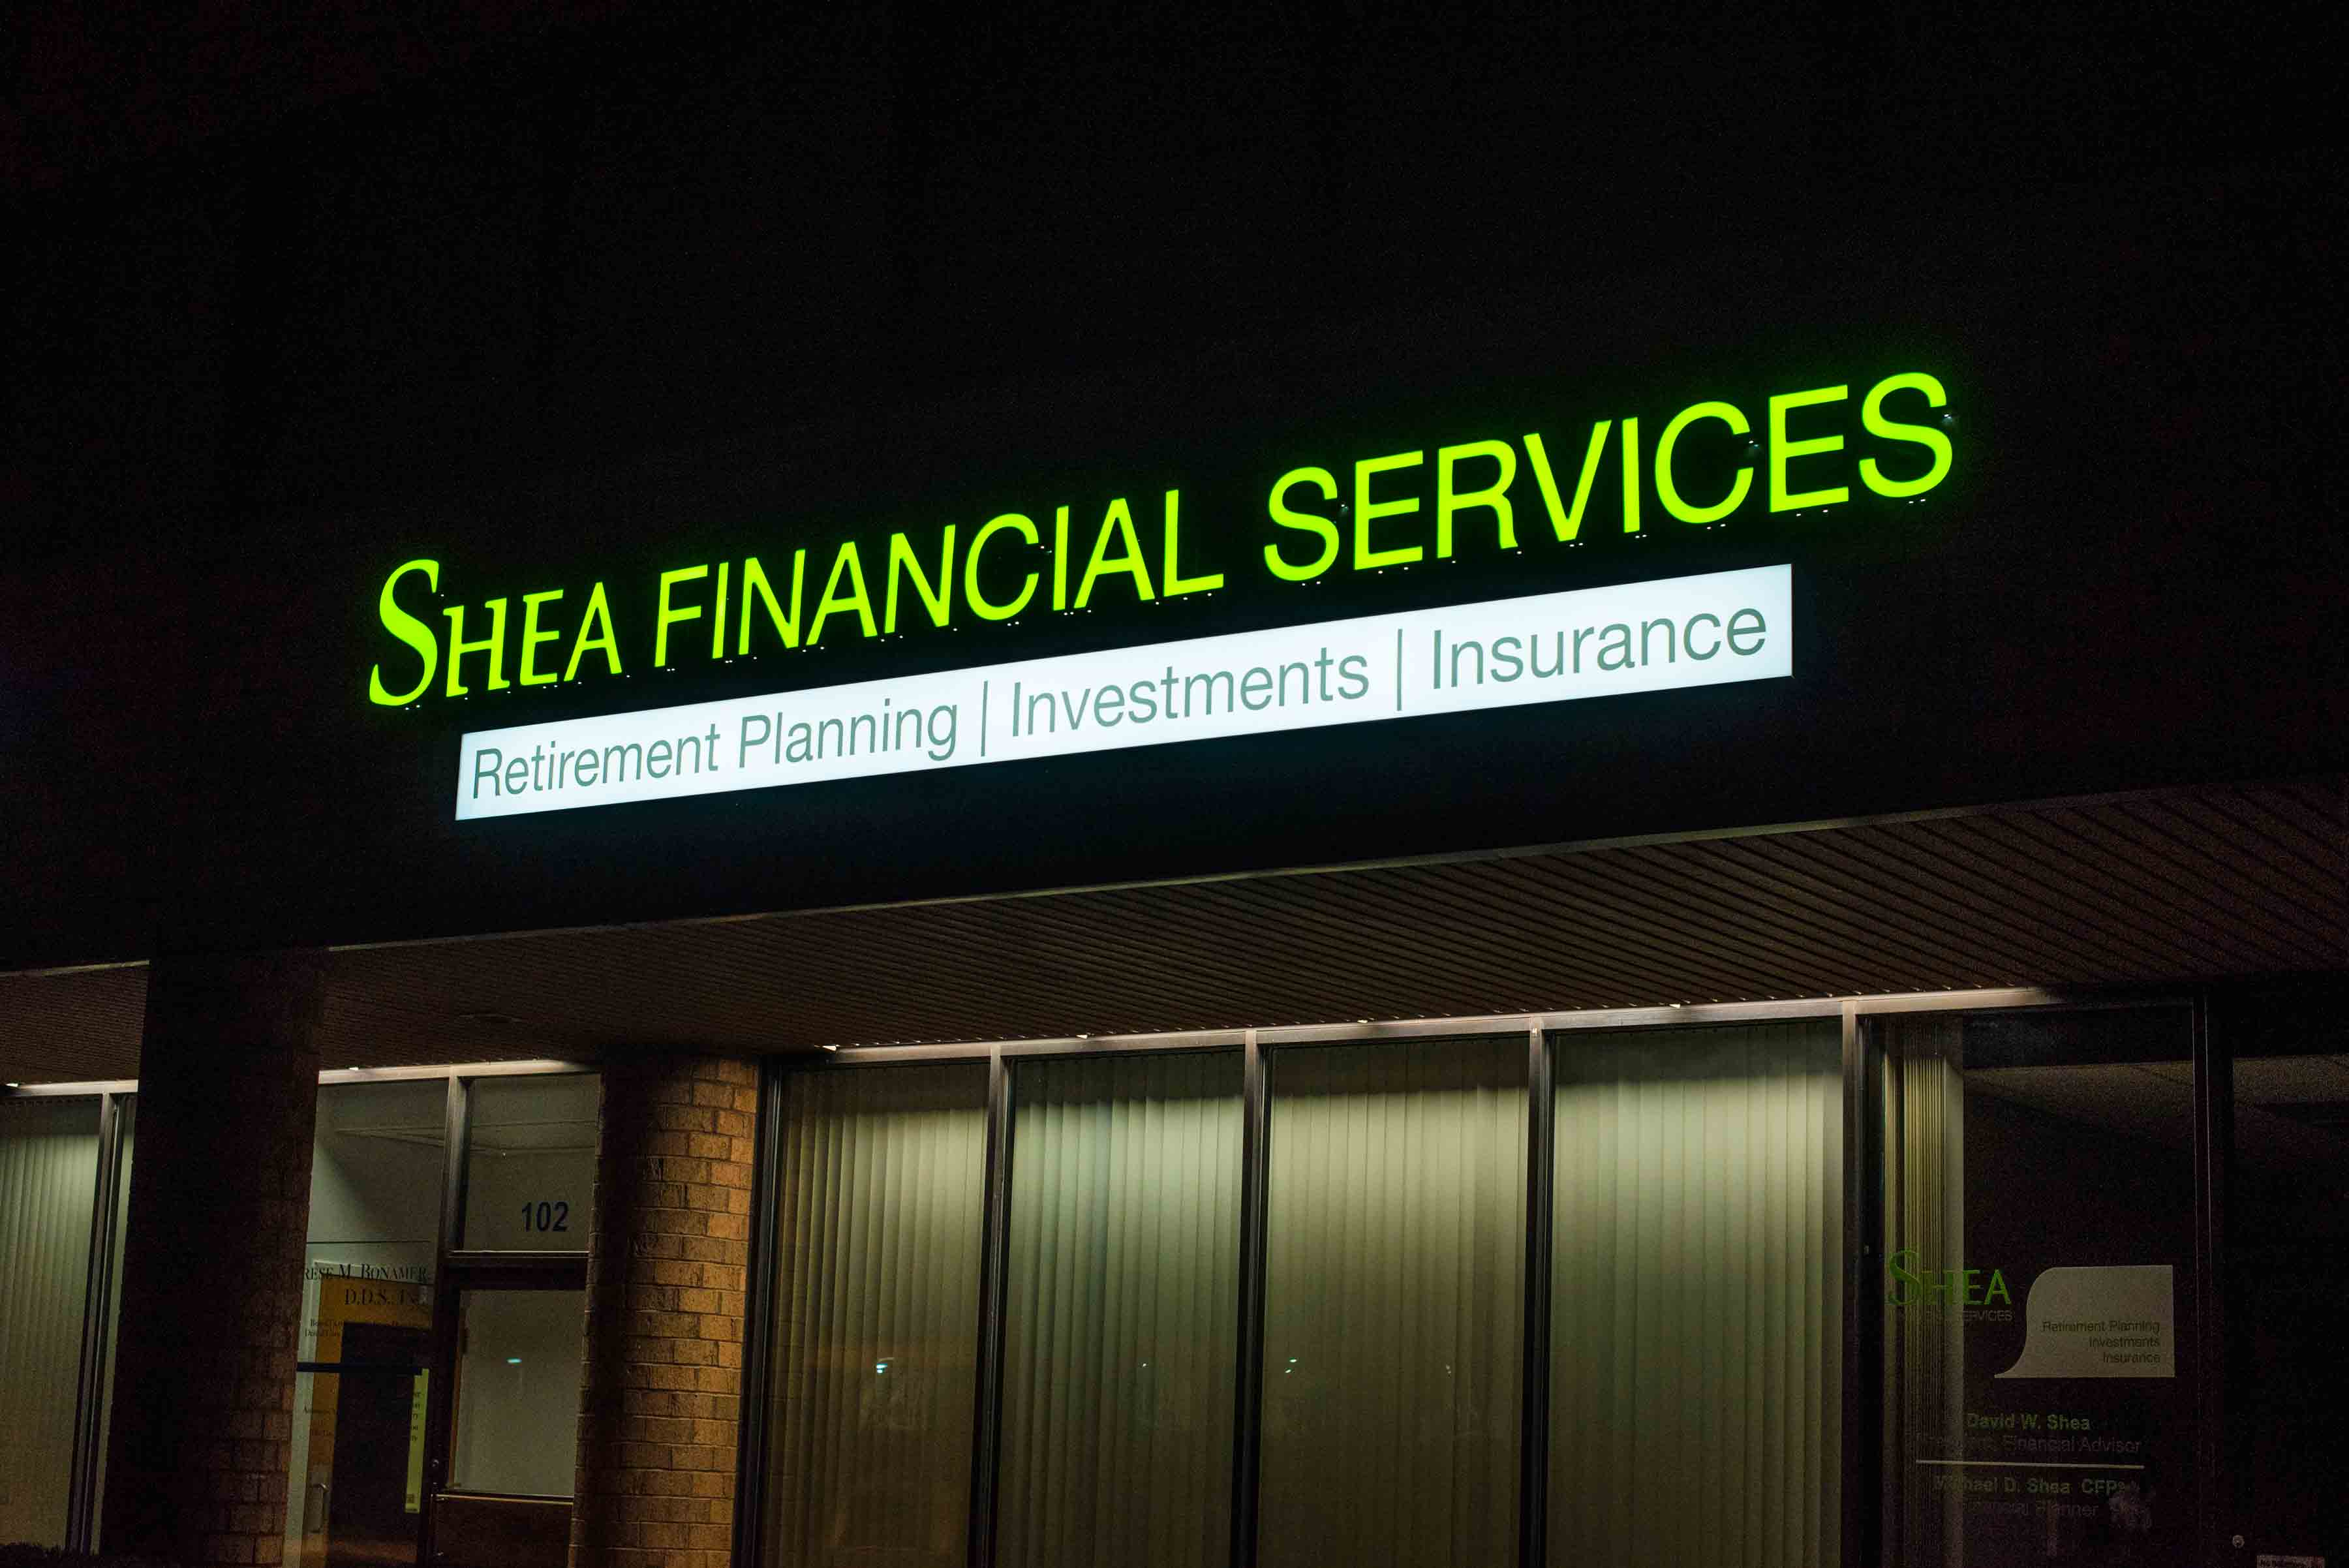 Shea Financial Services